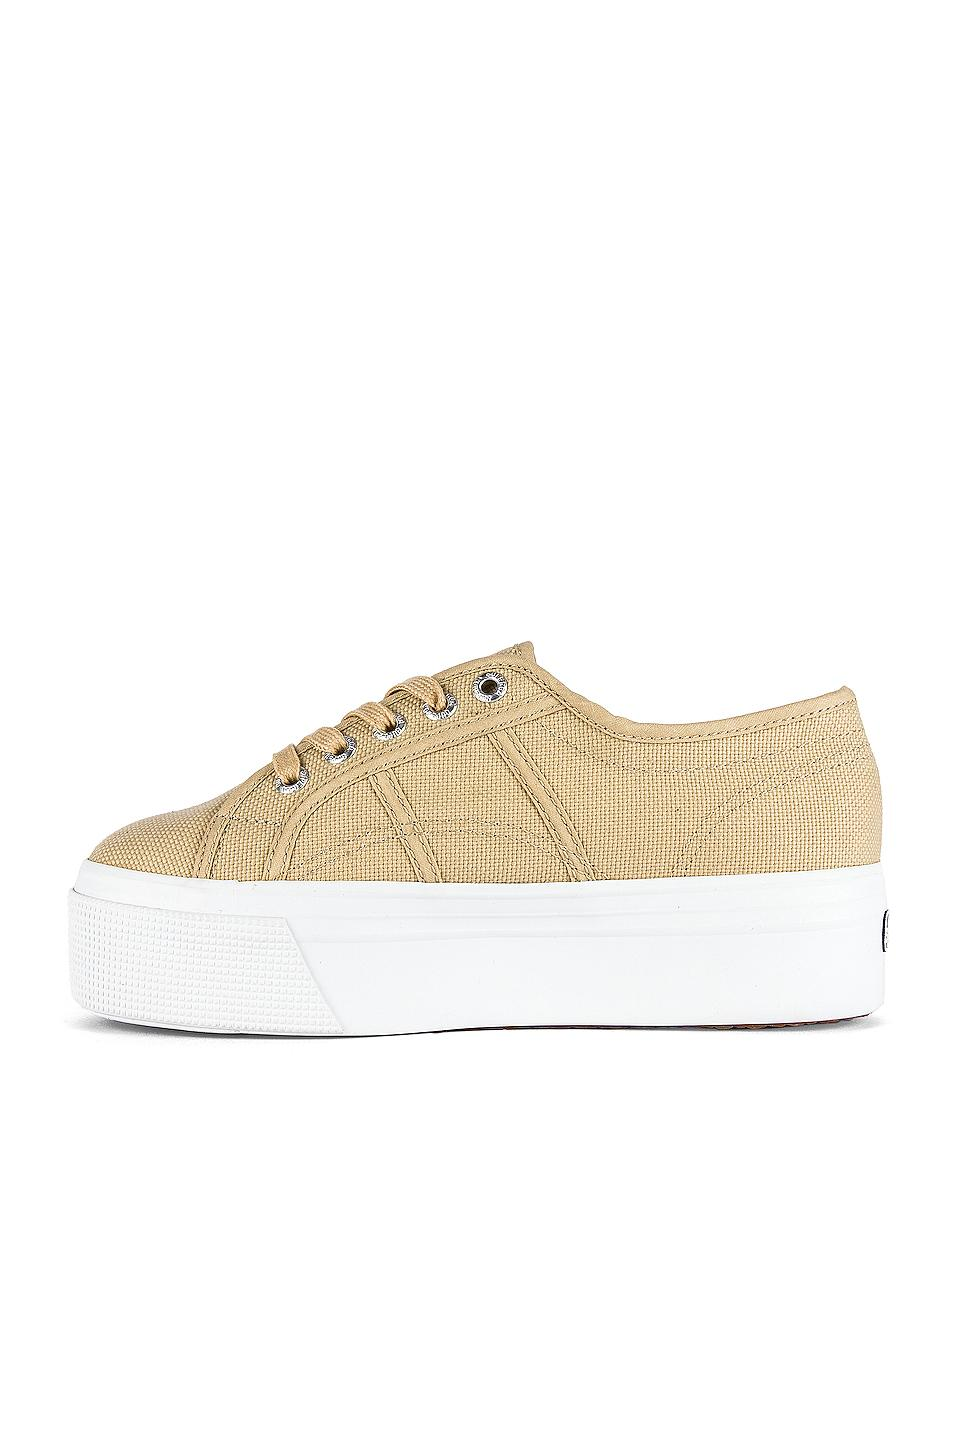 Zapatilla deportiva 2790-acotw Superga de Lona de color Neutro